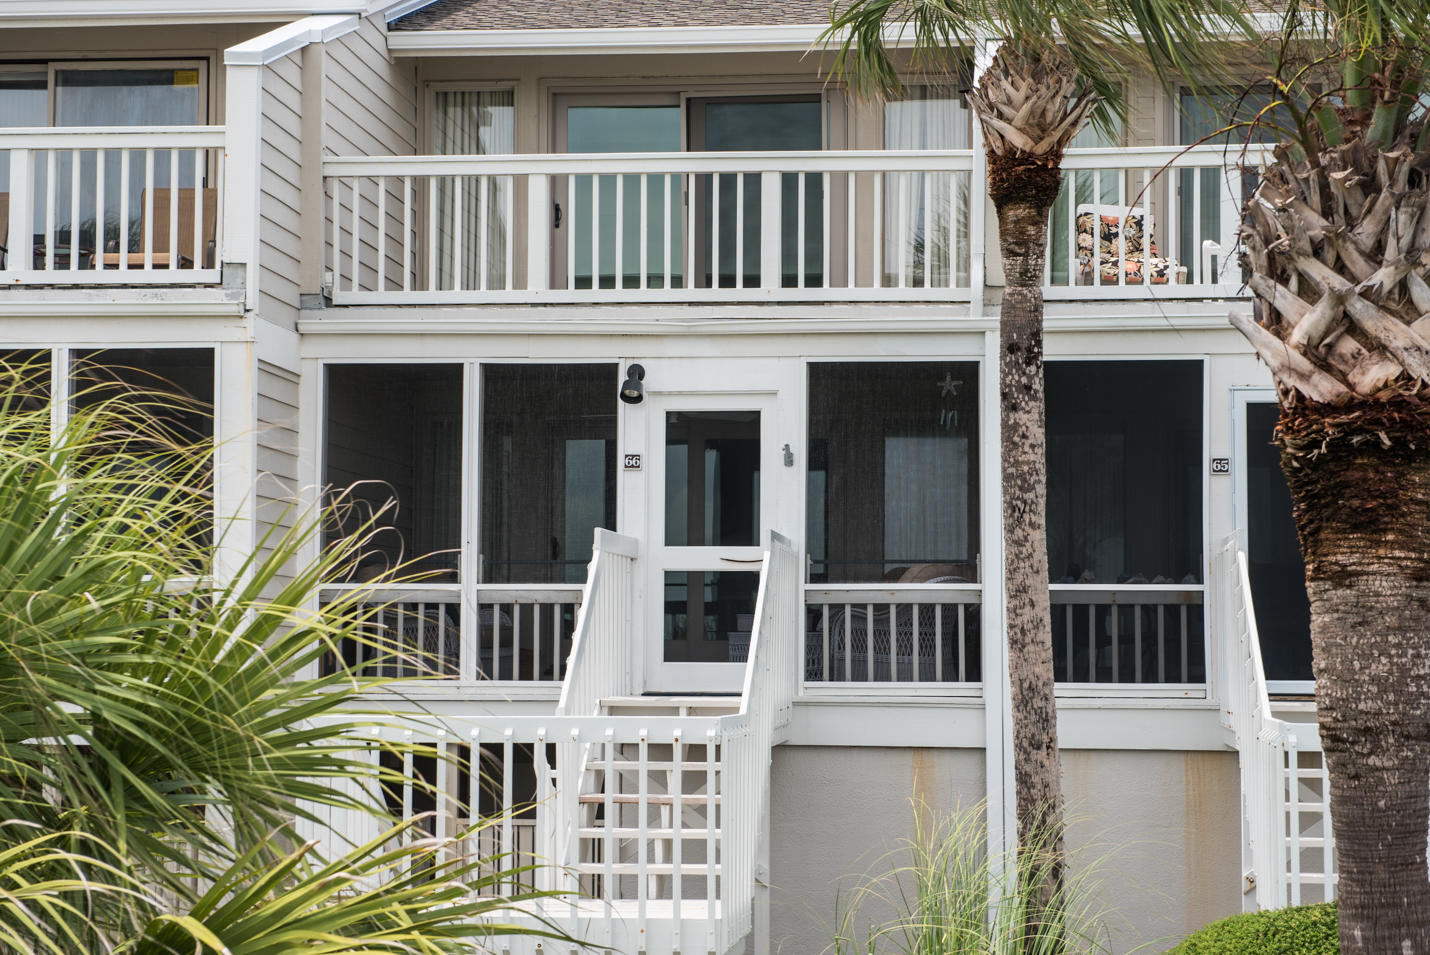 Beach Club Villas Homes For Sale - 66 Beach Club Villas, Isle of Palms, SC - 29